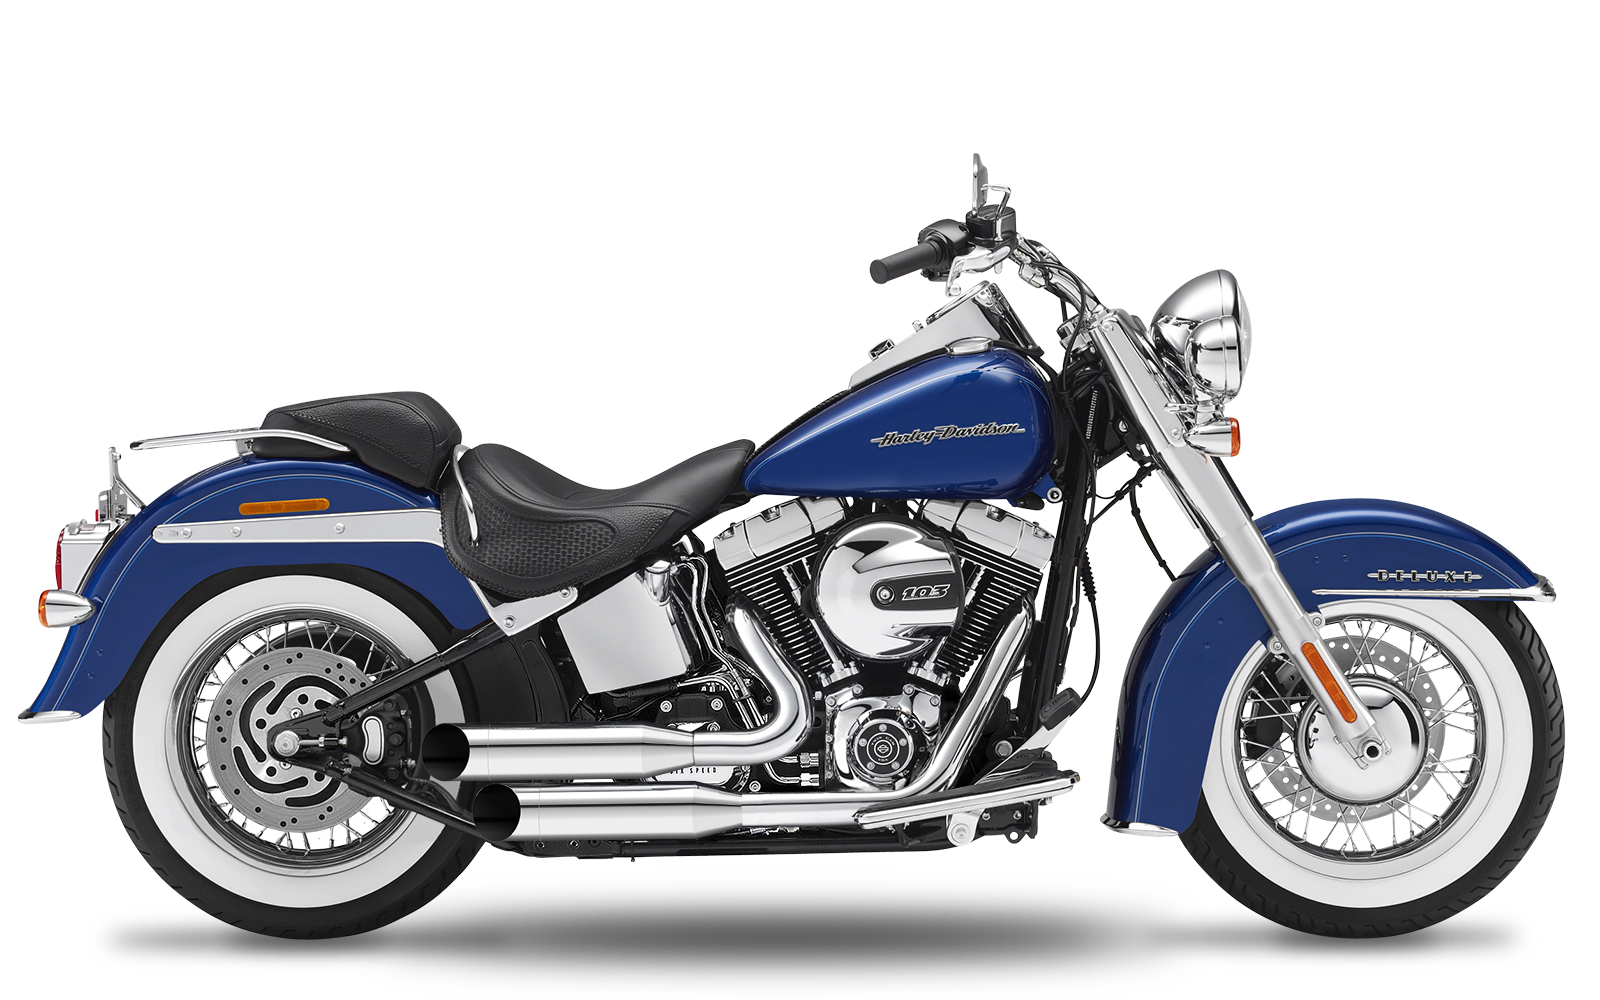 Softail - Deluxe - TC96 - 2007-2011 - Complete systems